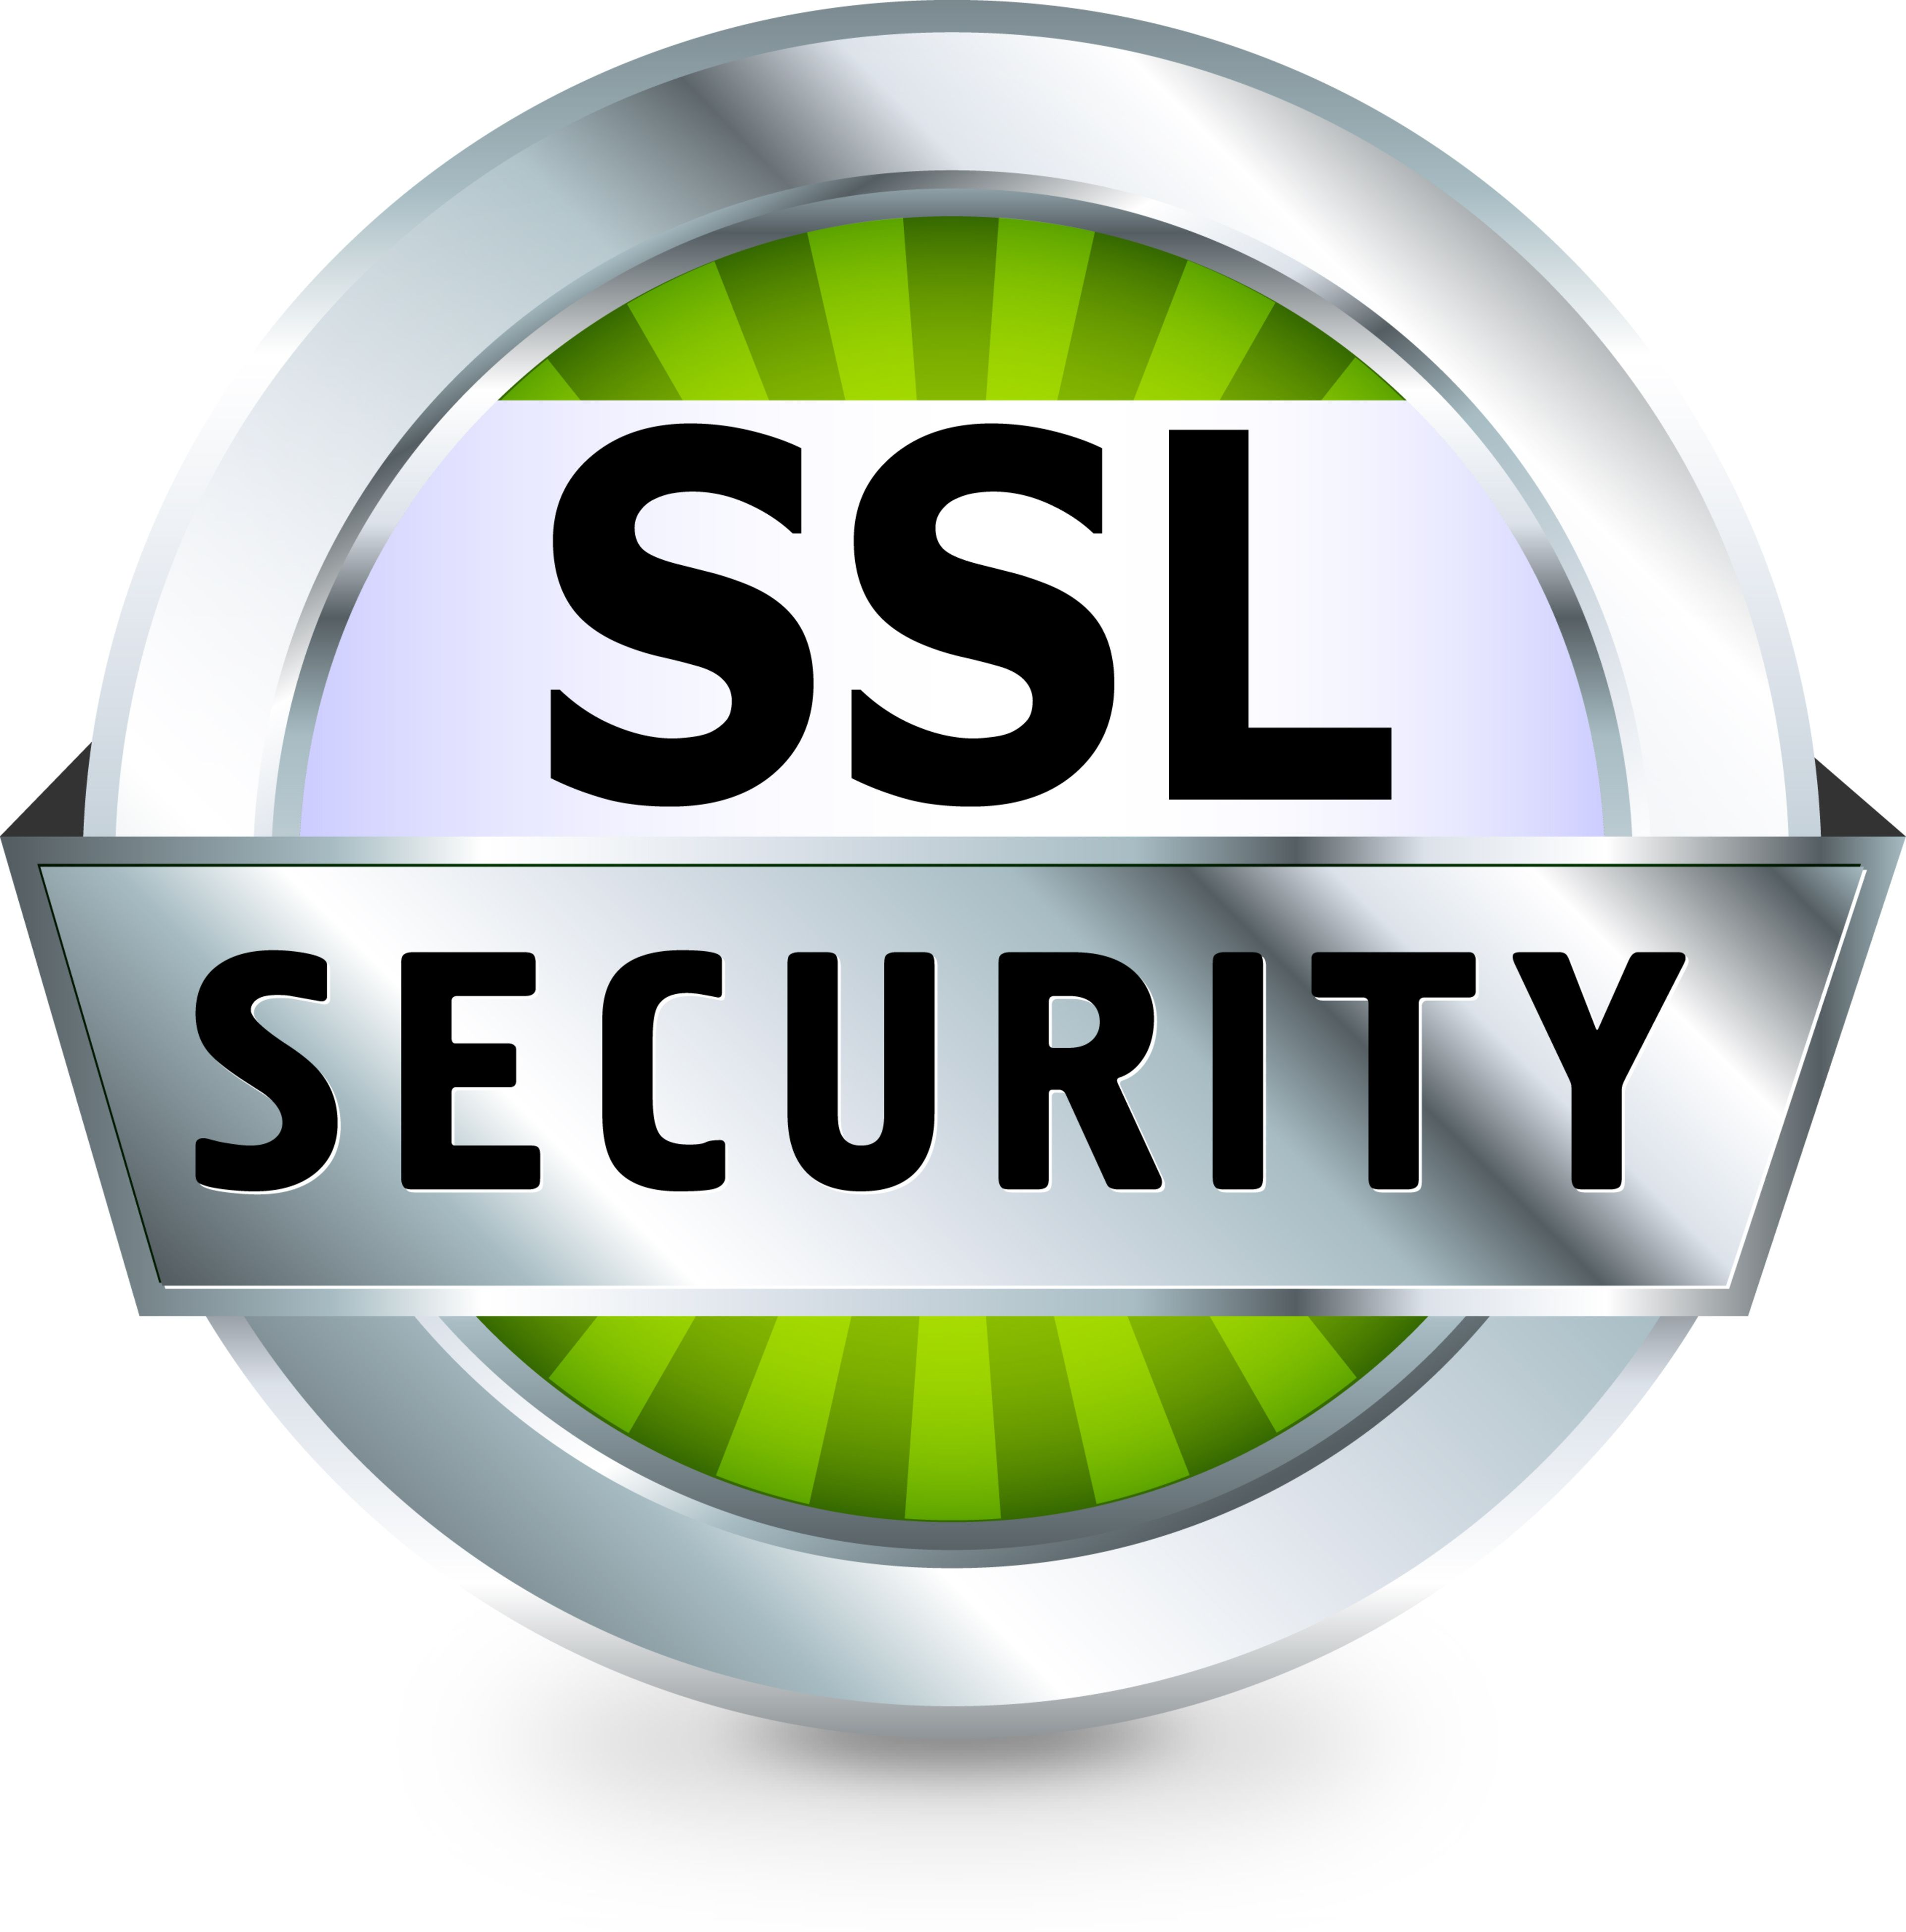 Secure socket layer ssl is a safety protocol that ensures the godaddy ssl certificate benefits for online business xflitez Image collections